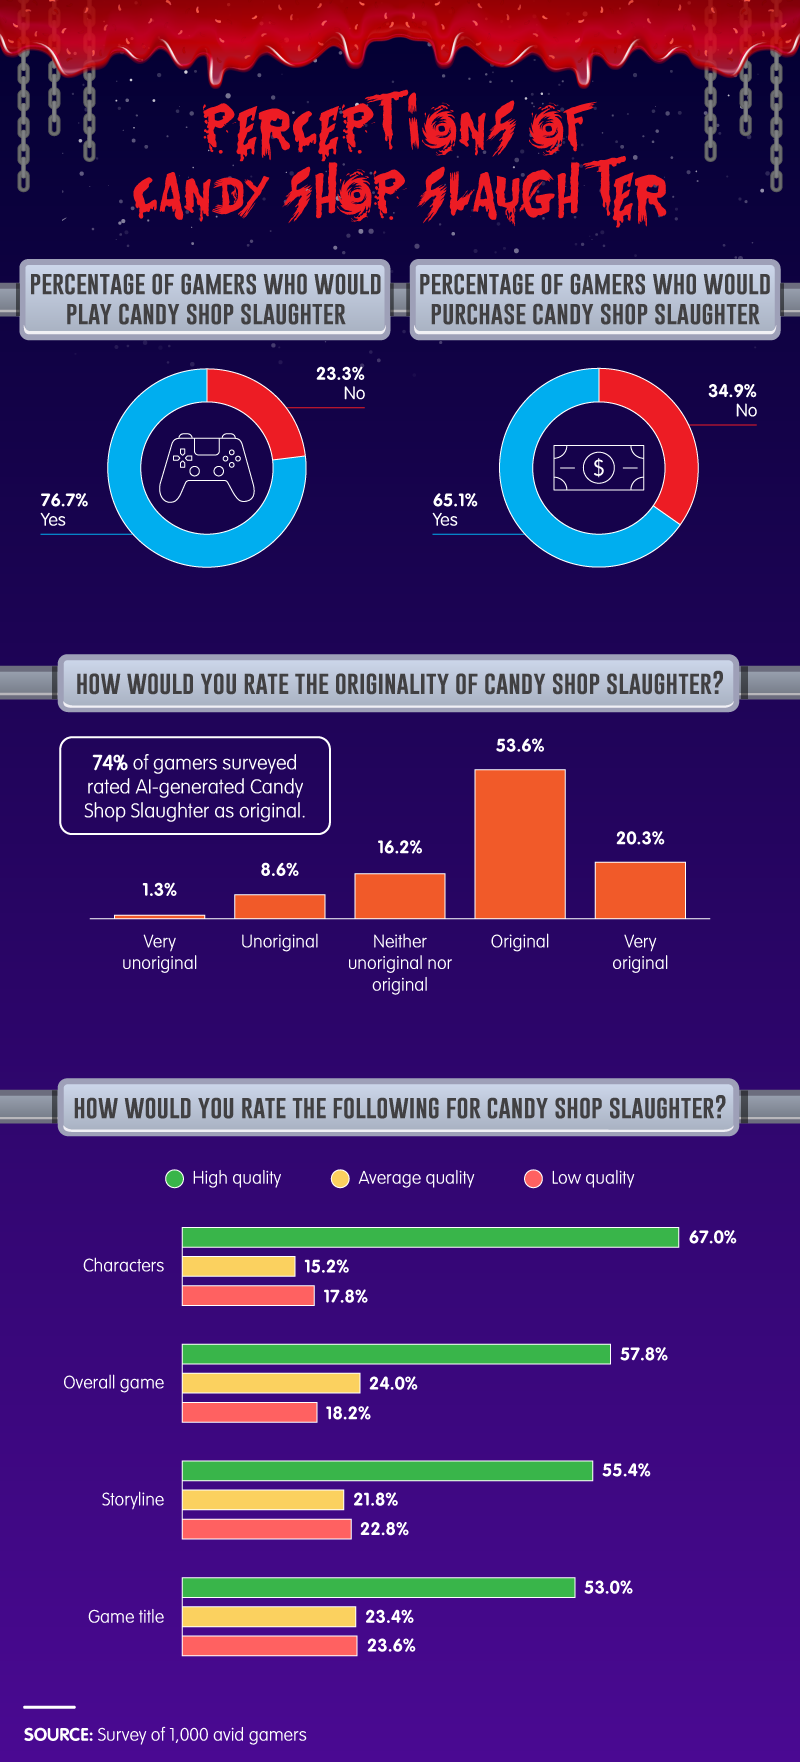 perceptions-of-candy-shop-slaughter